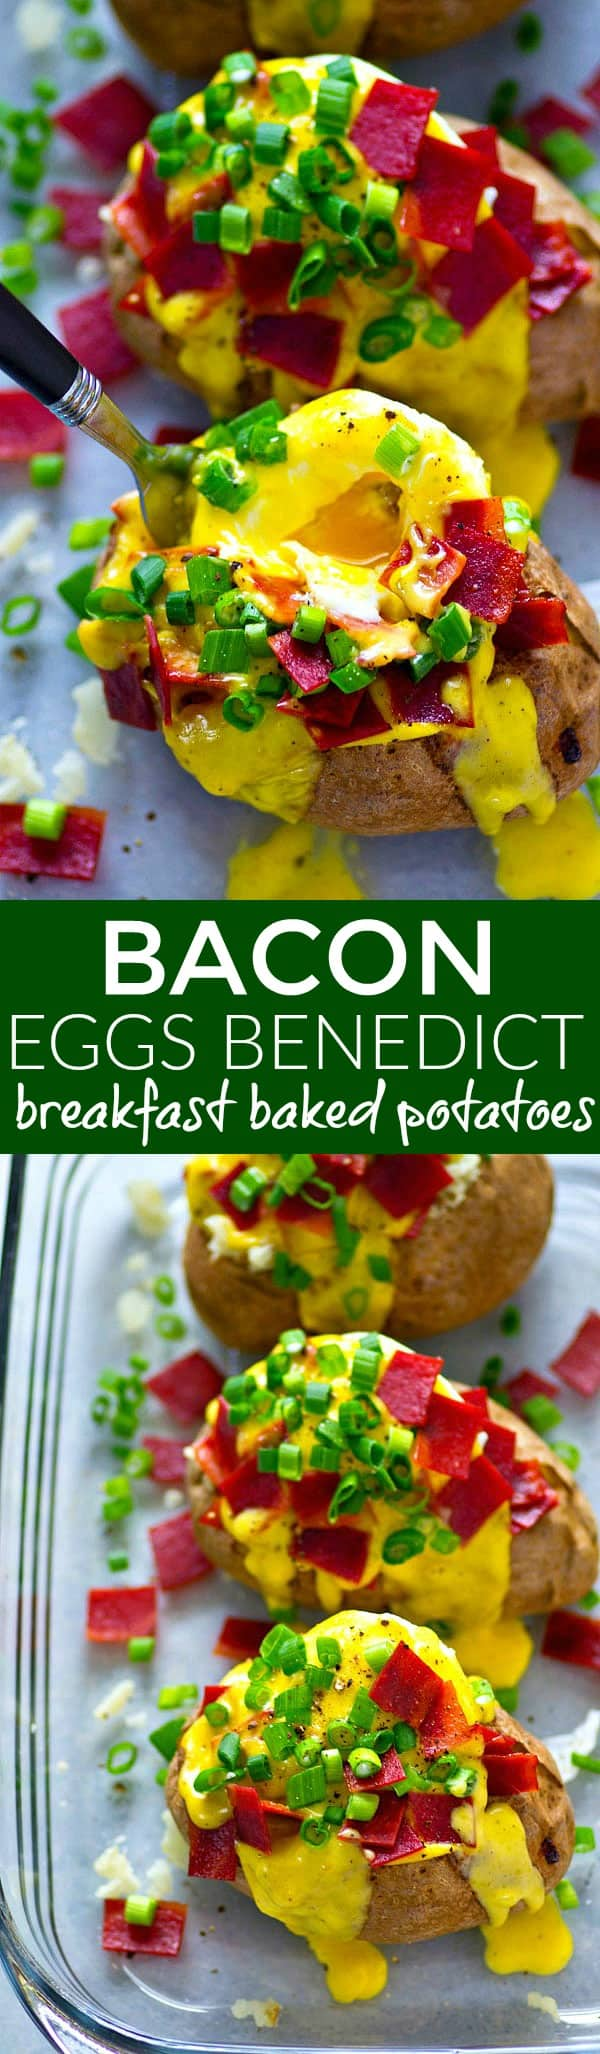 Anyone who loves eggs benedict is going to go CRAZY for these bacon eggs benedict breakfast baked potatoes! Packed with all the fixins' and homemade hollandaise sauce.